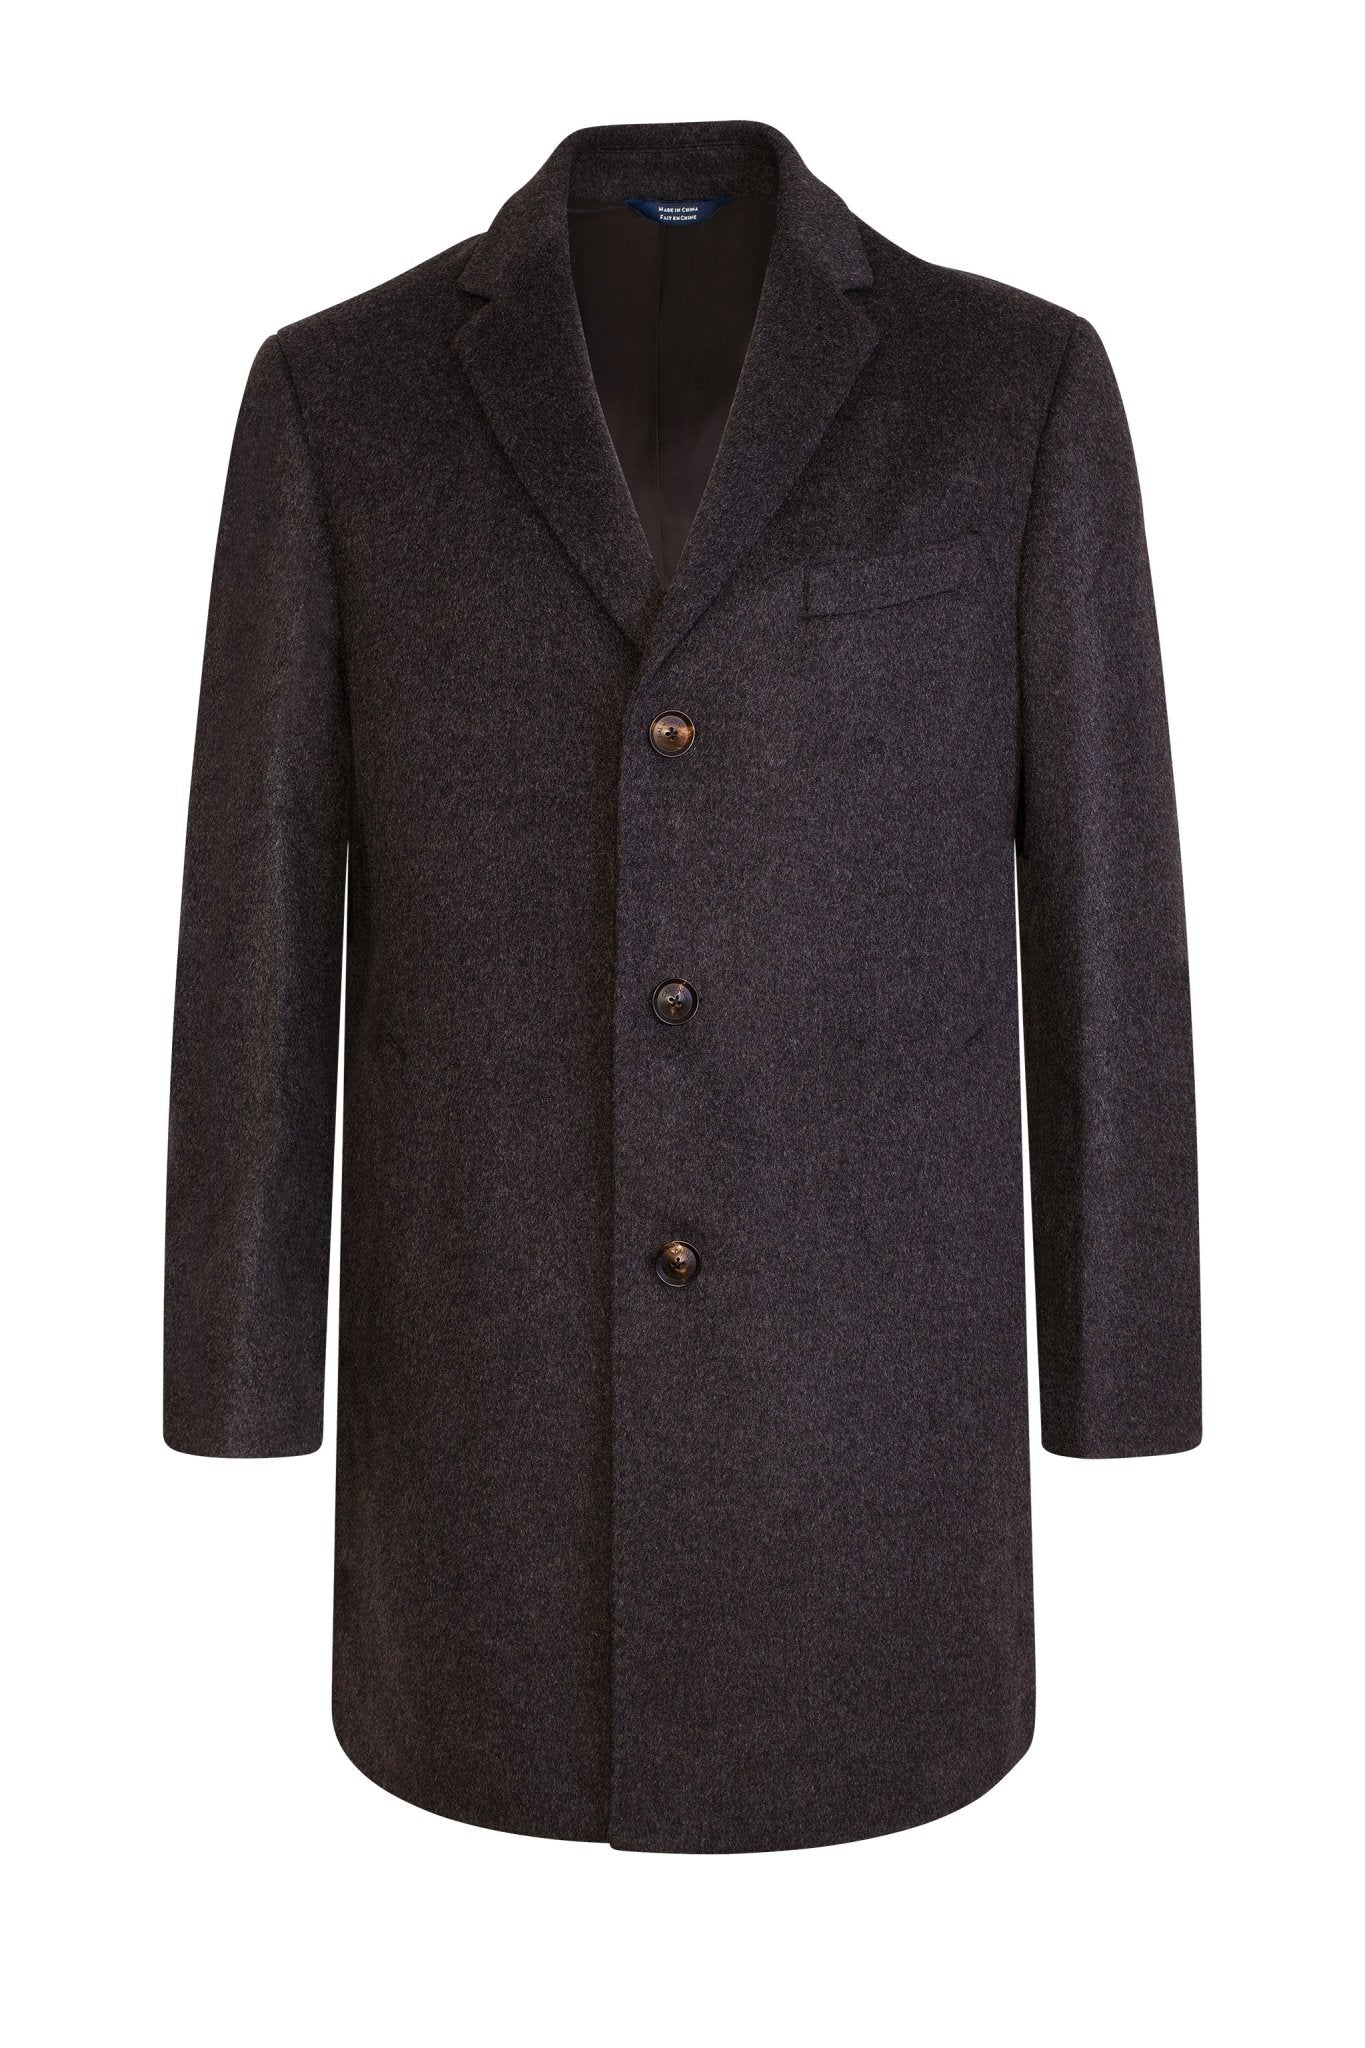 Charcoal Saint-Paul Cashmere Wool Heritage Overcoat - Cardinal of Canada-US